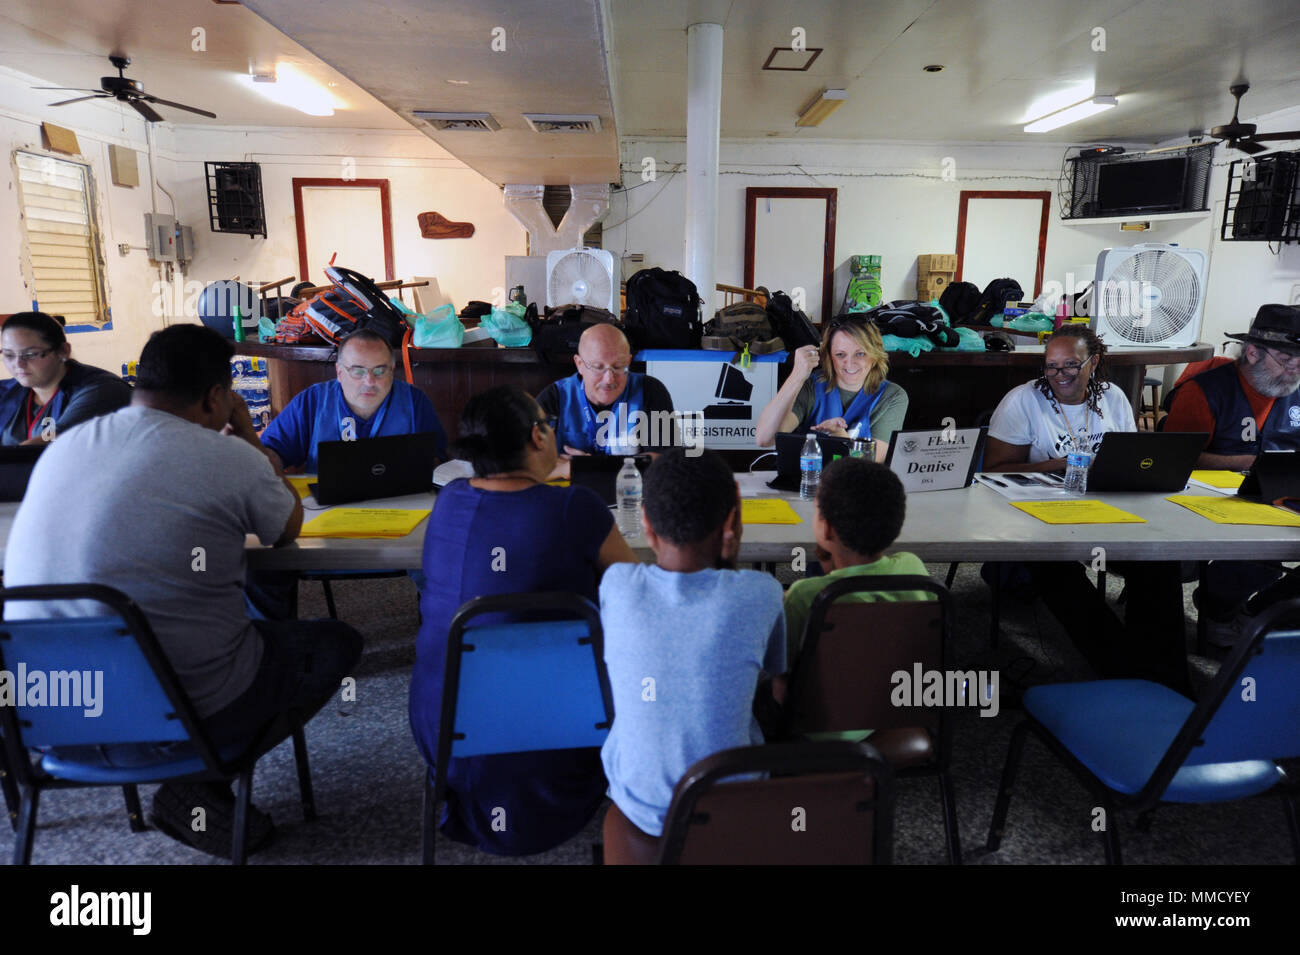 Disaster Recovery Specialist Ferderiksted St Croix U S Virgin Islands October 14 2017